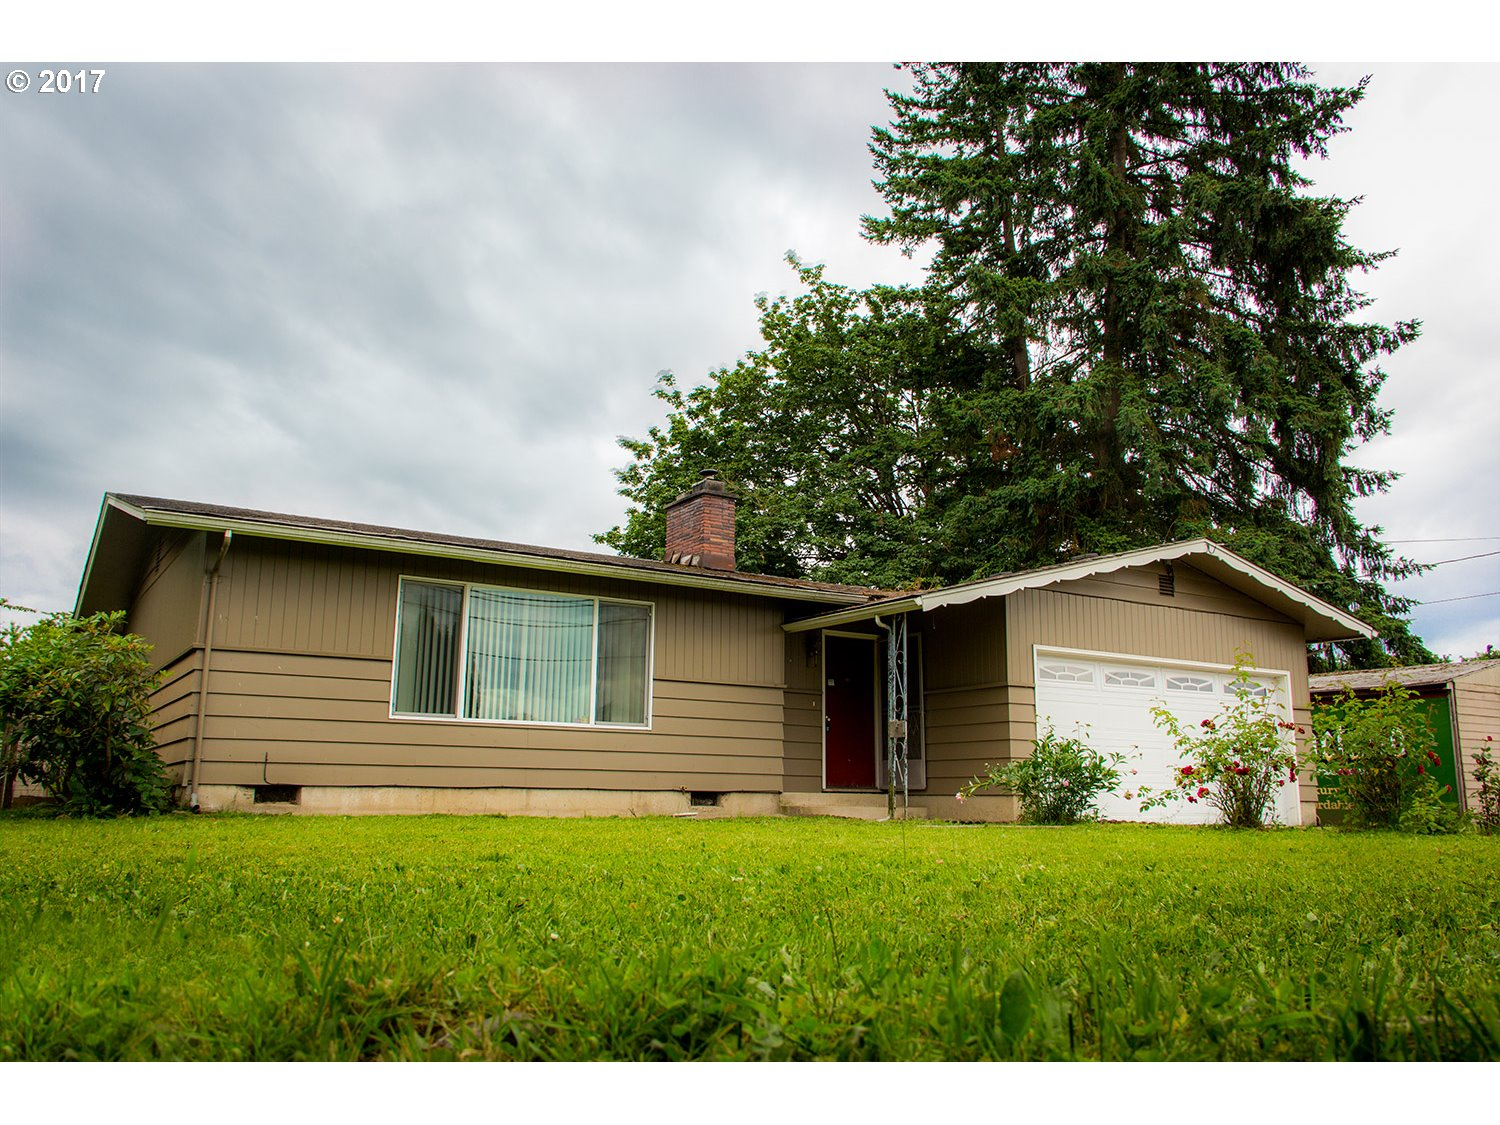 34042 E CLOVERDALE RD, Creswell, OR 97426